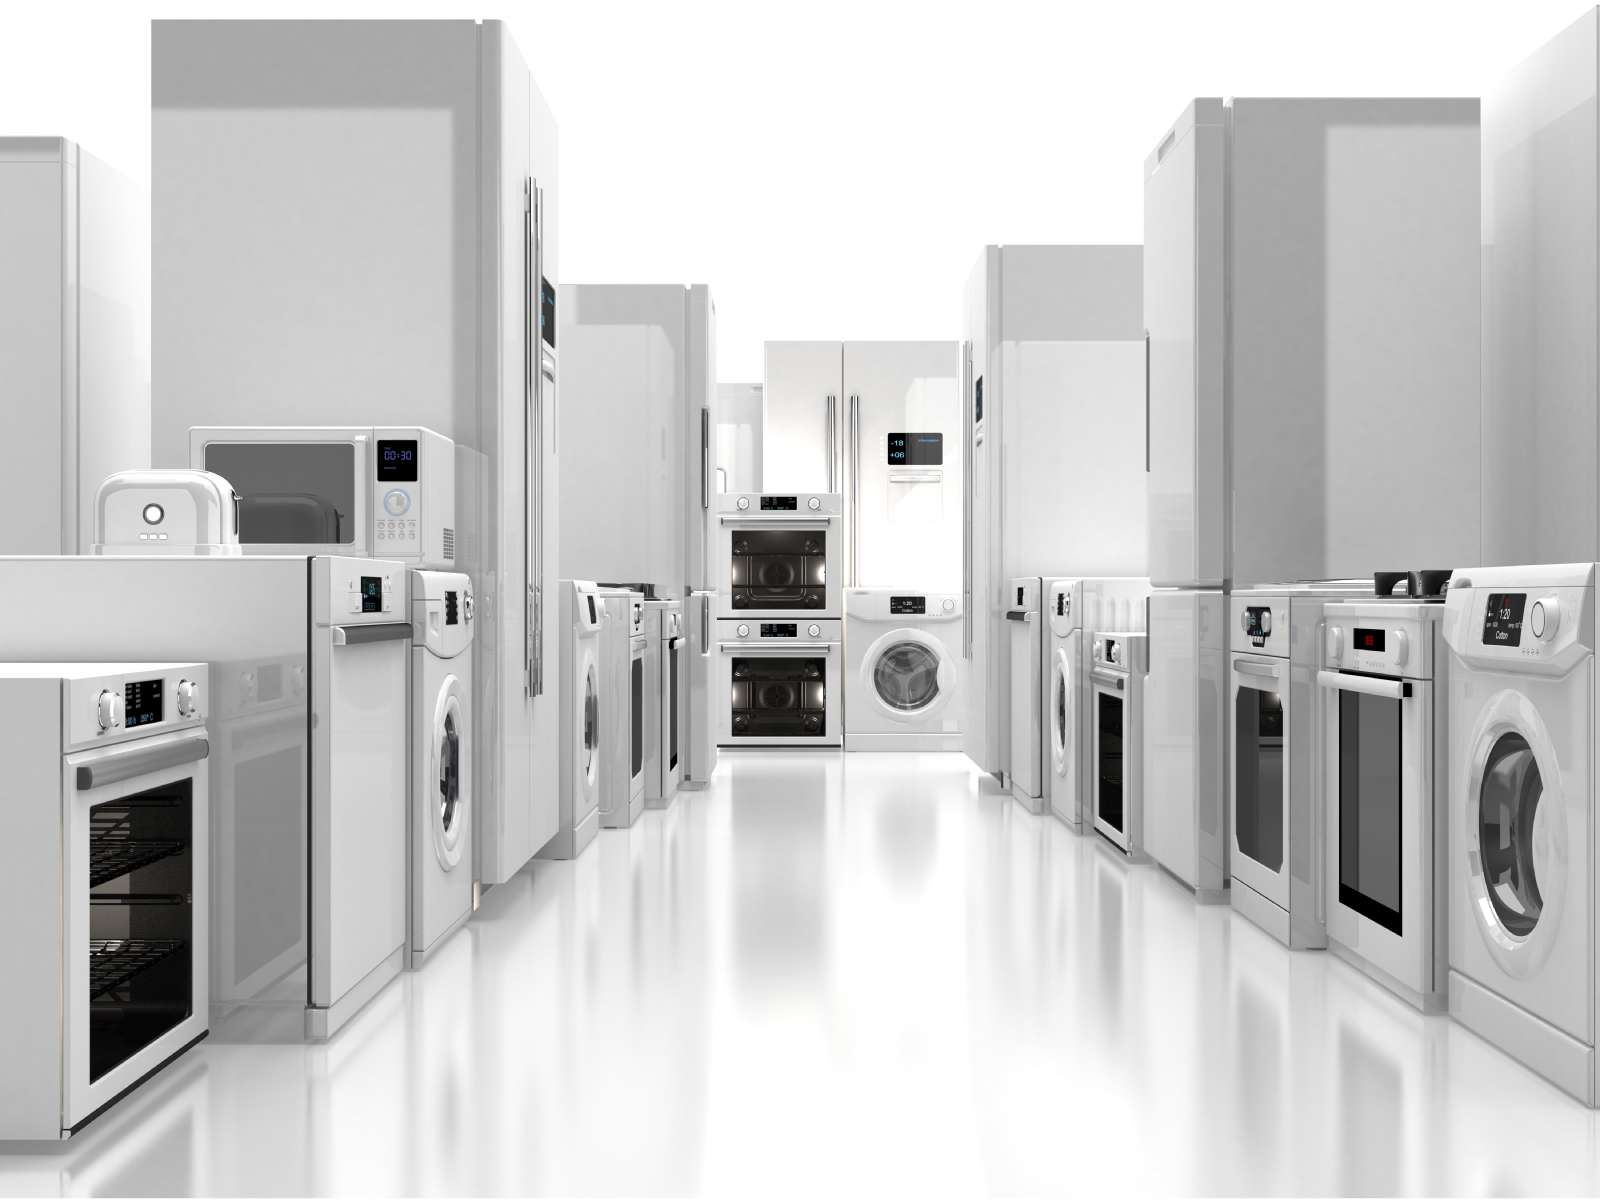 What about appliances life? - Home Appliances World